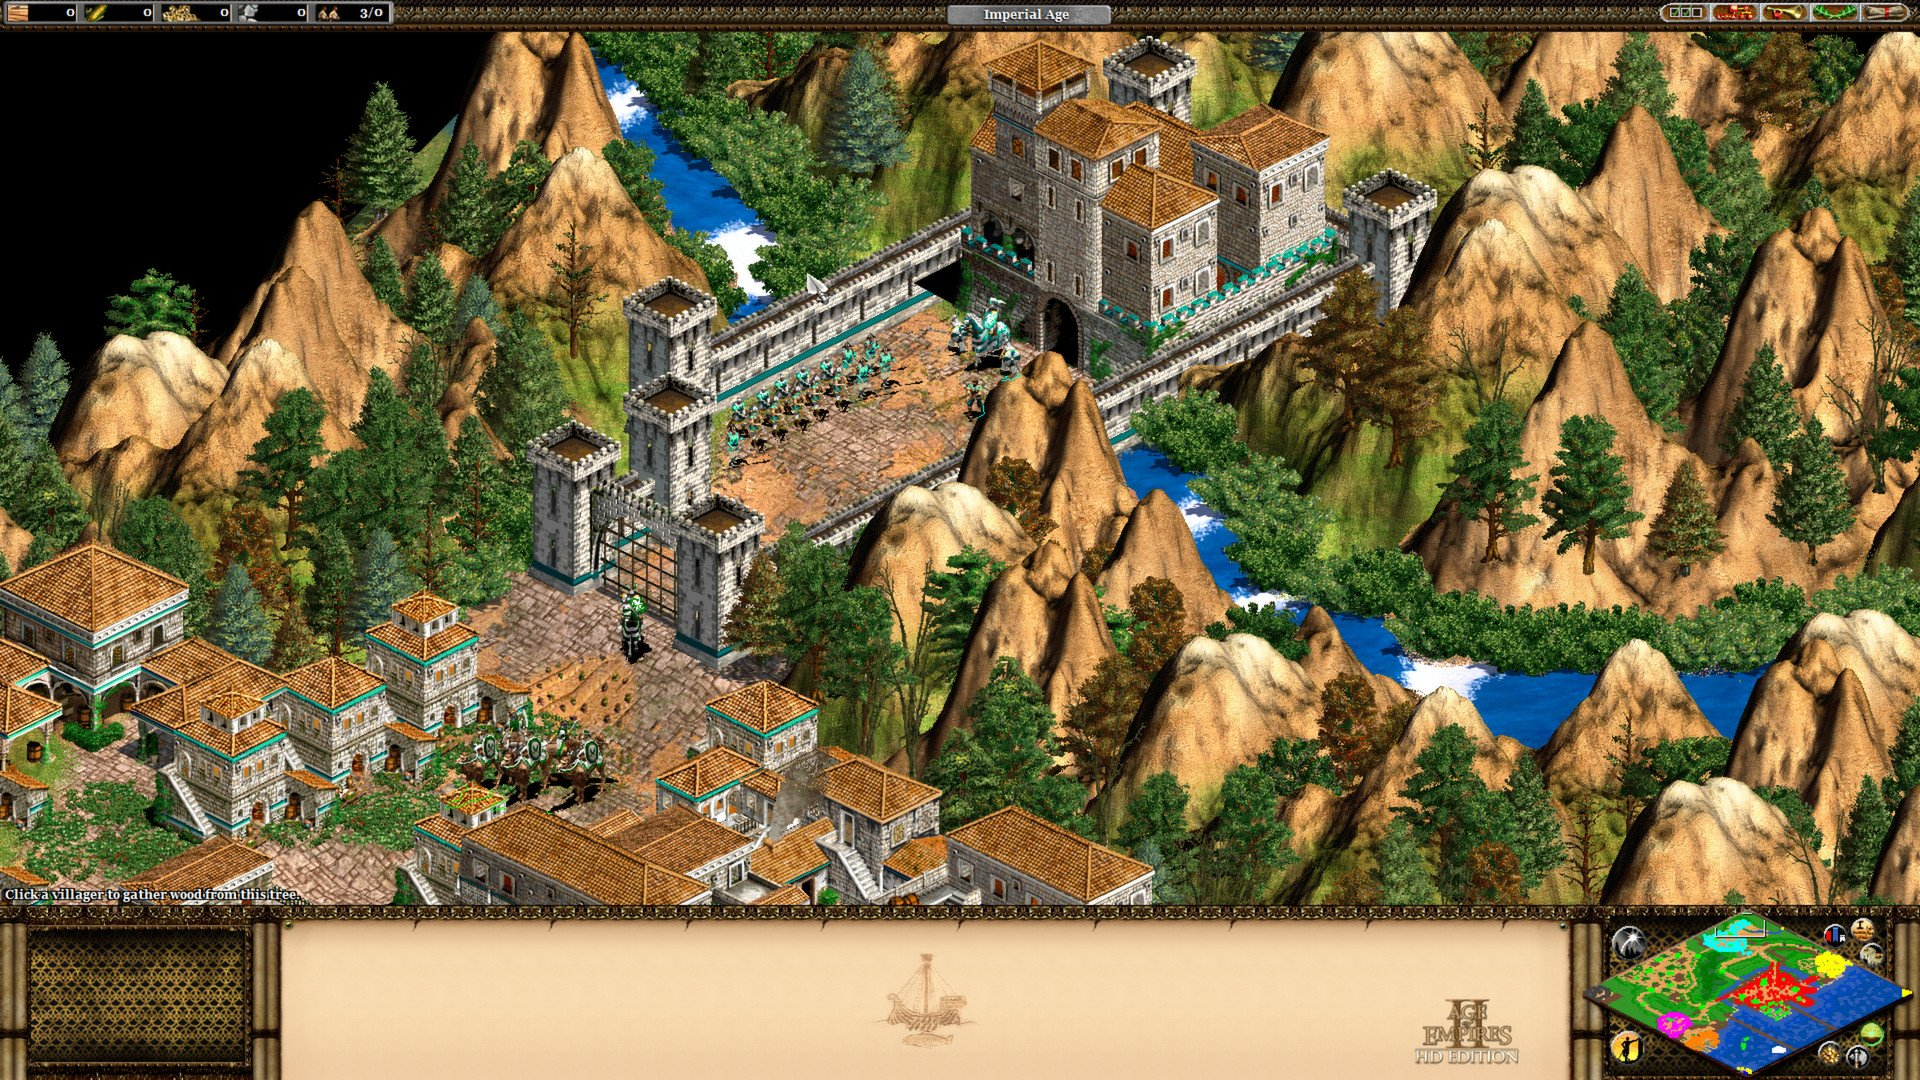 Age of Empires II HD: The African Kingdoms v20151105 [MULTI11] Fixed Files Age of Empires II - HD Edition v4.2.681794 [MULTI11] Fixed Files Age of Empires II - HD Edition v4.0.316058 [MULTI11] Fixed Files